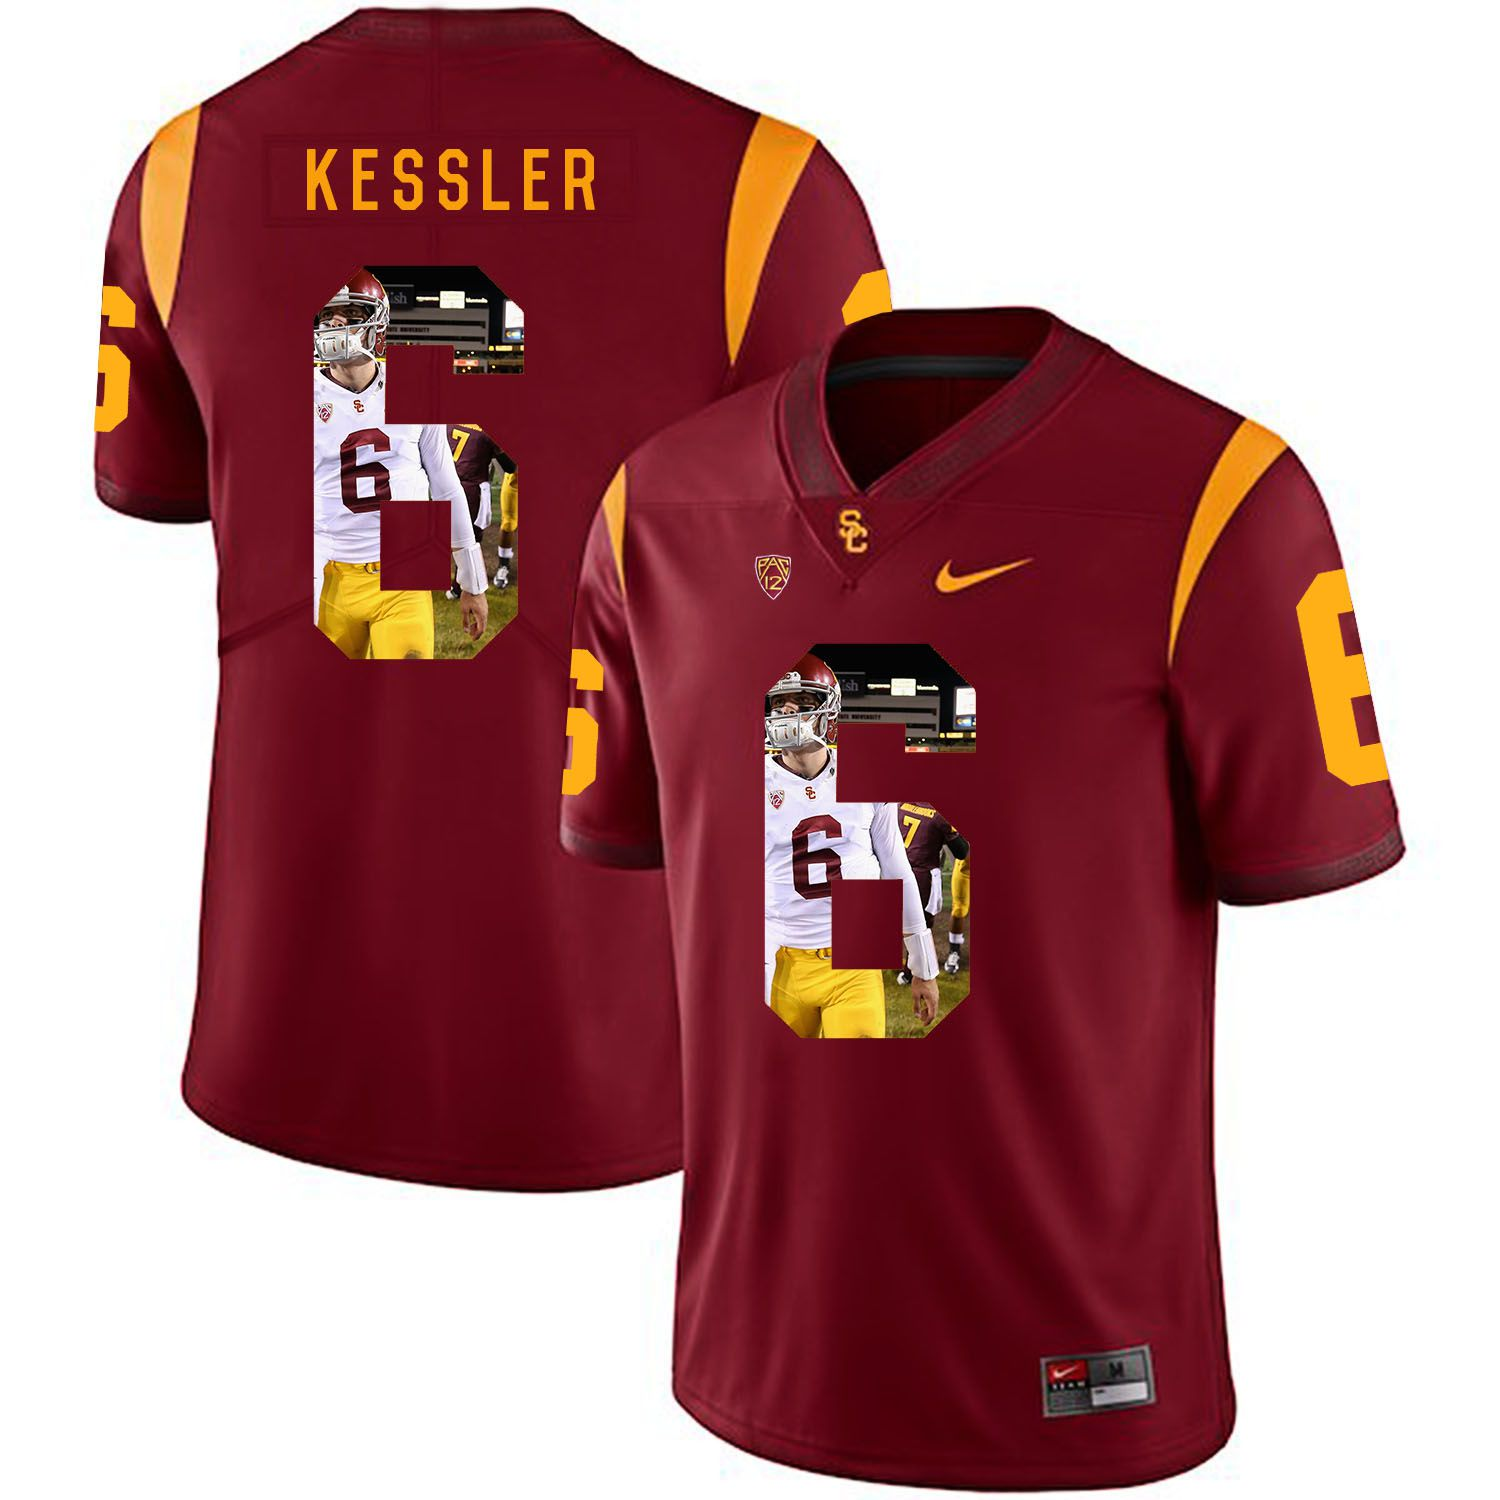 Men USC Trojans 6 Kessler Red Fashion Edition Customized NCAA Jerseys